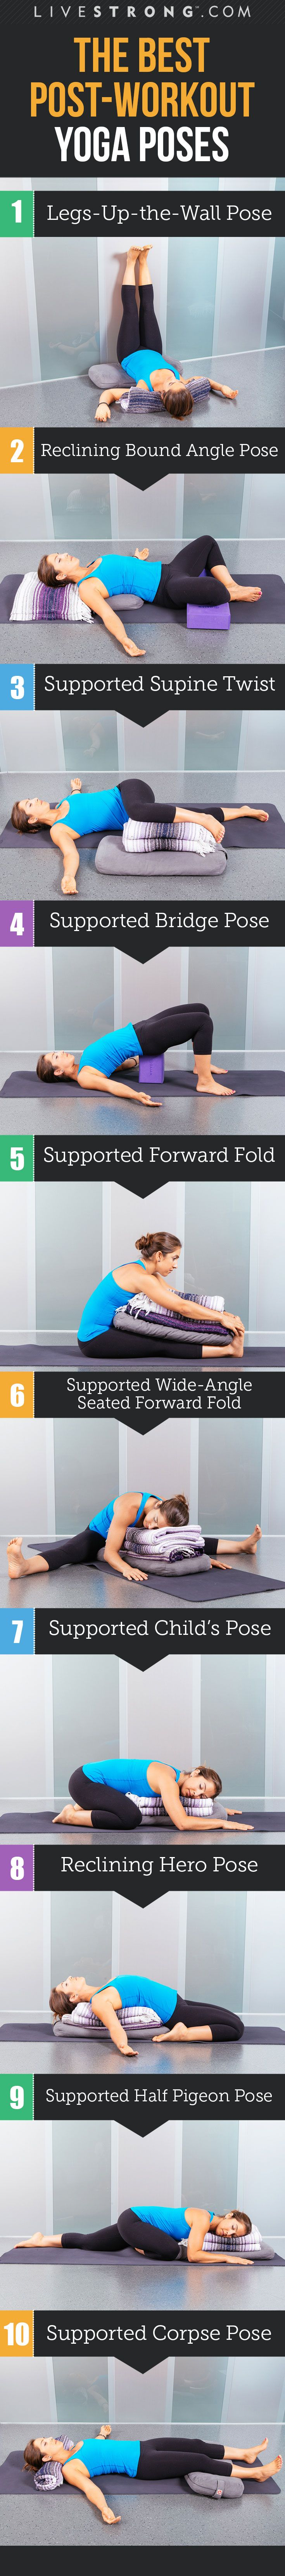 10 Yoga Poses to Help You Recover from Your Workout